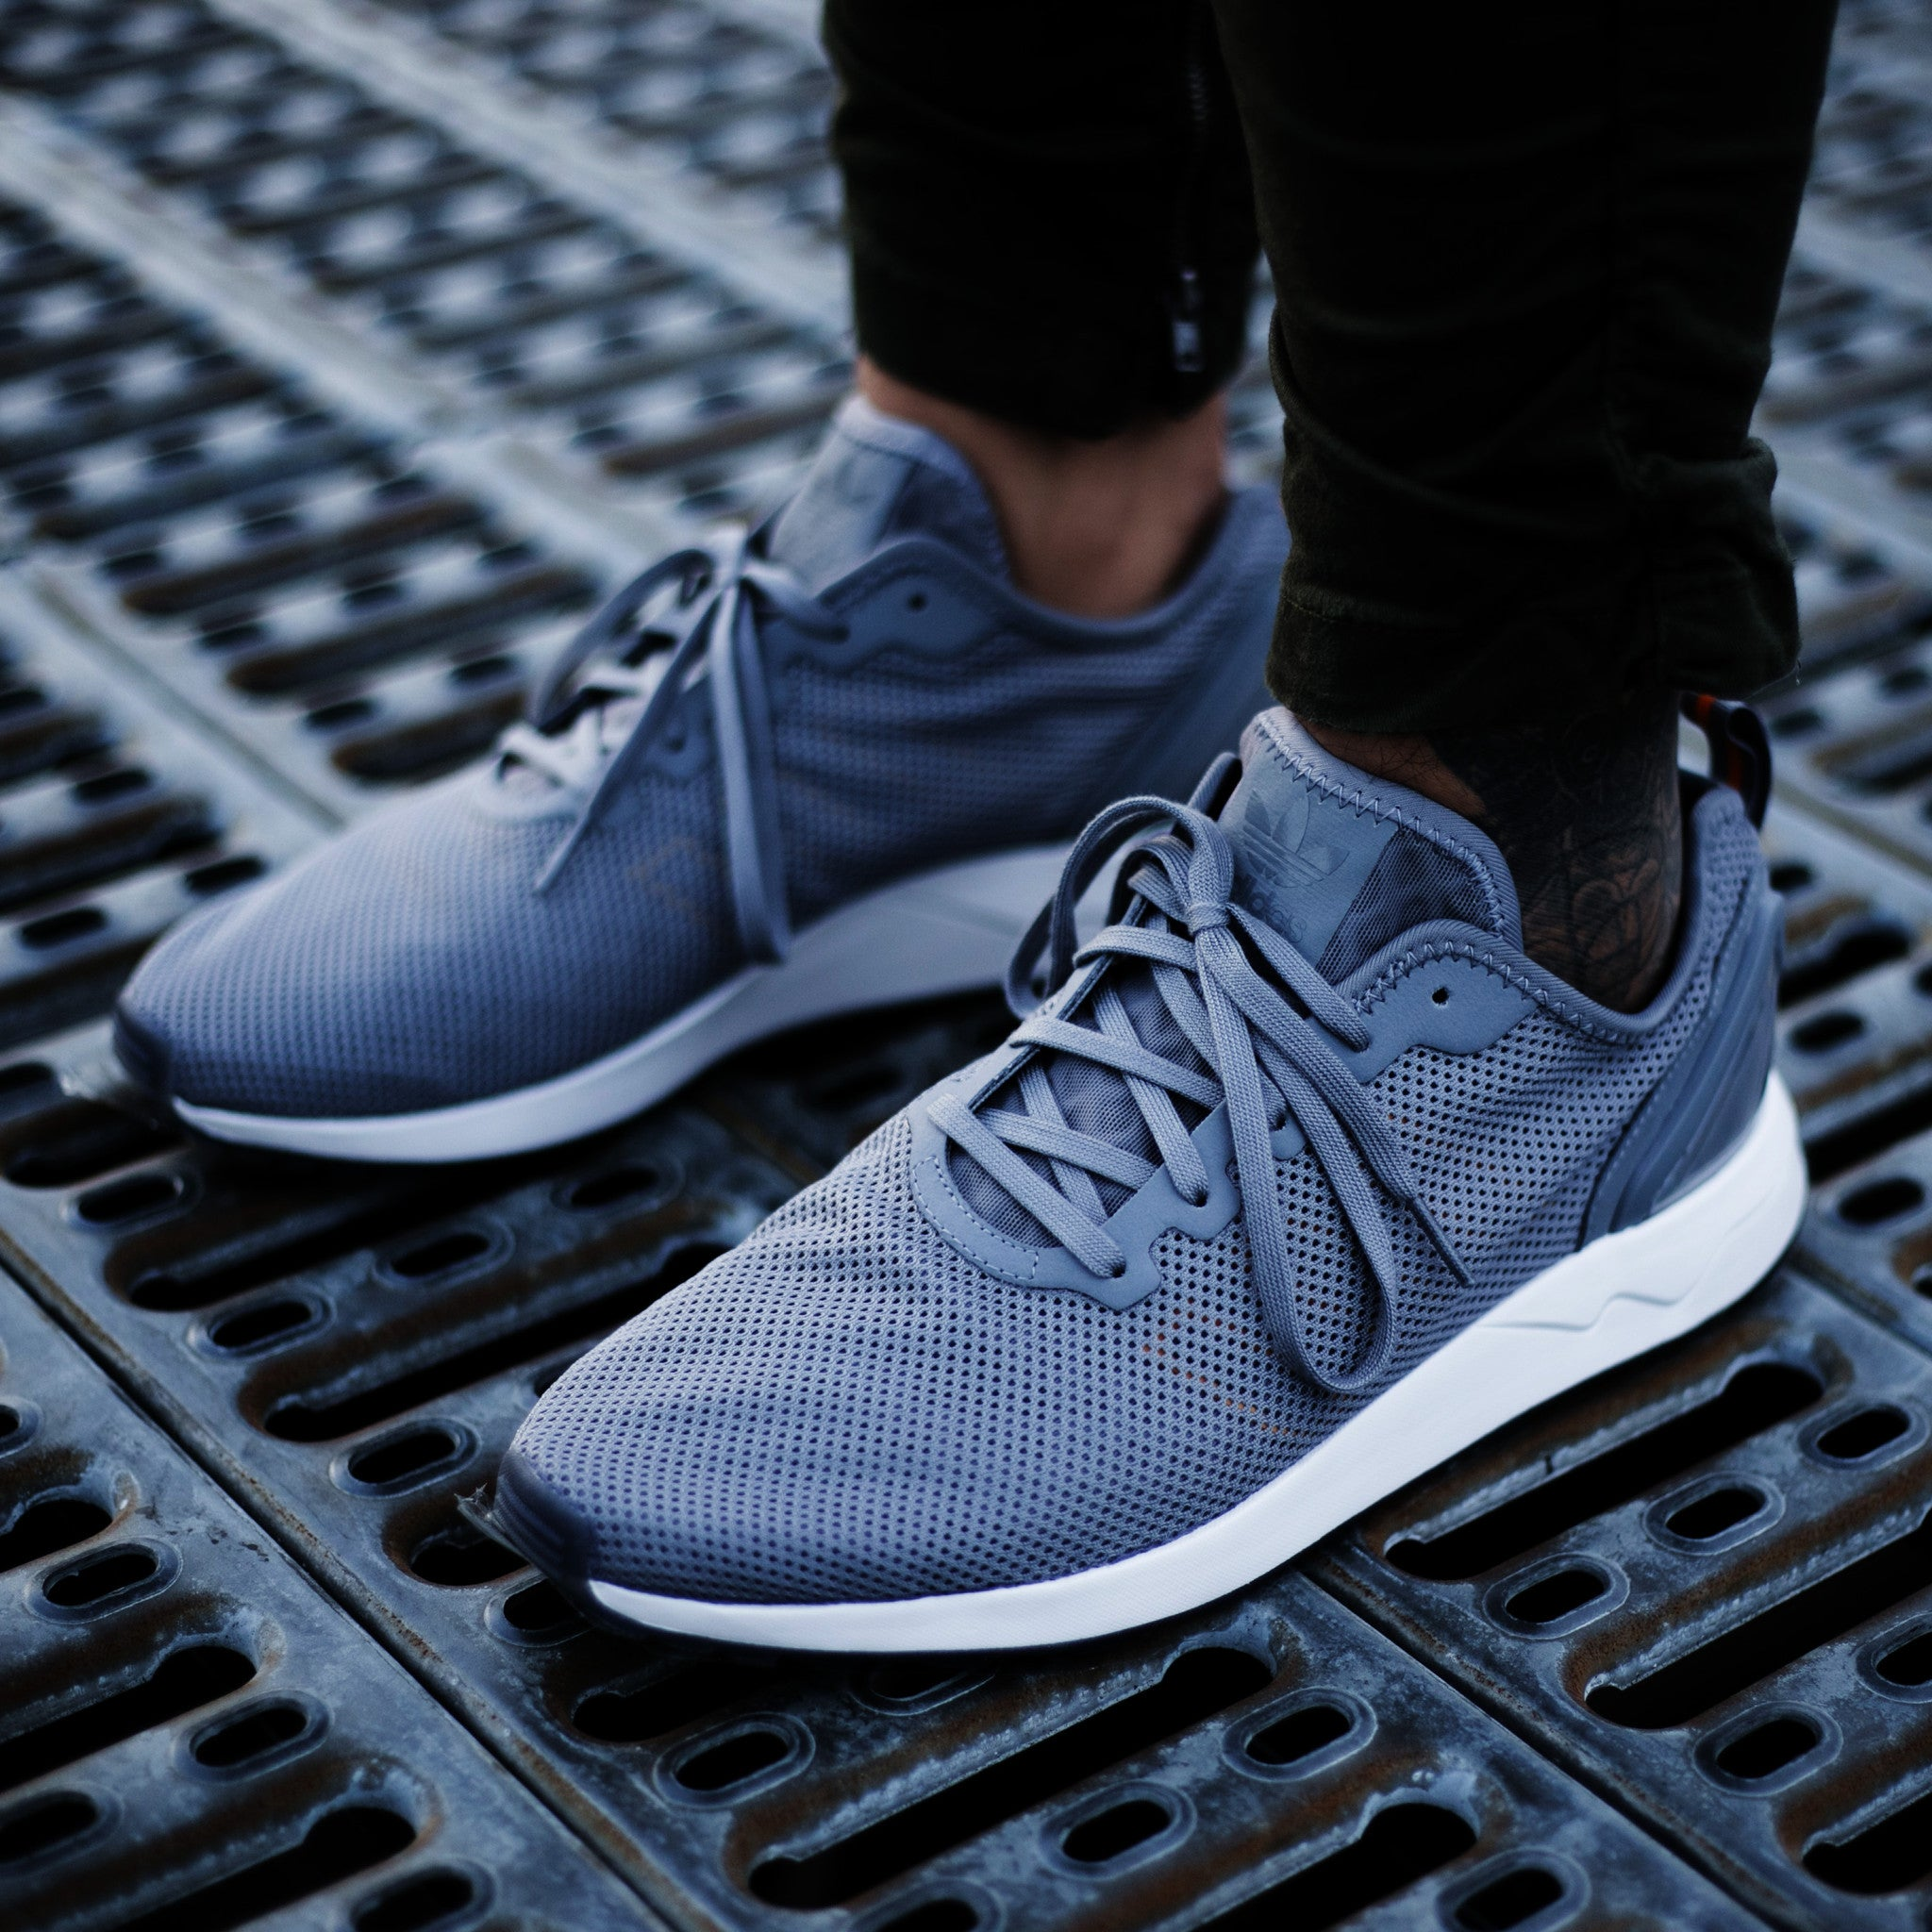 Adidas Zx Flux Grey White